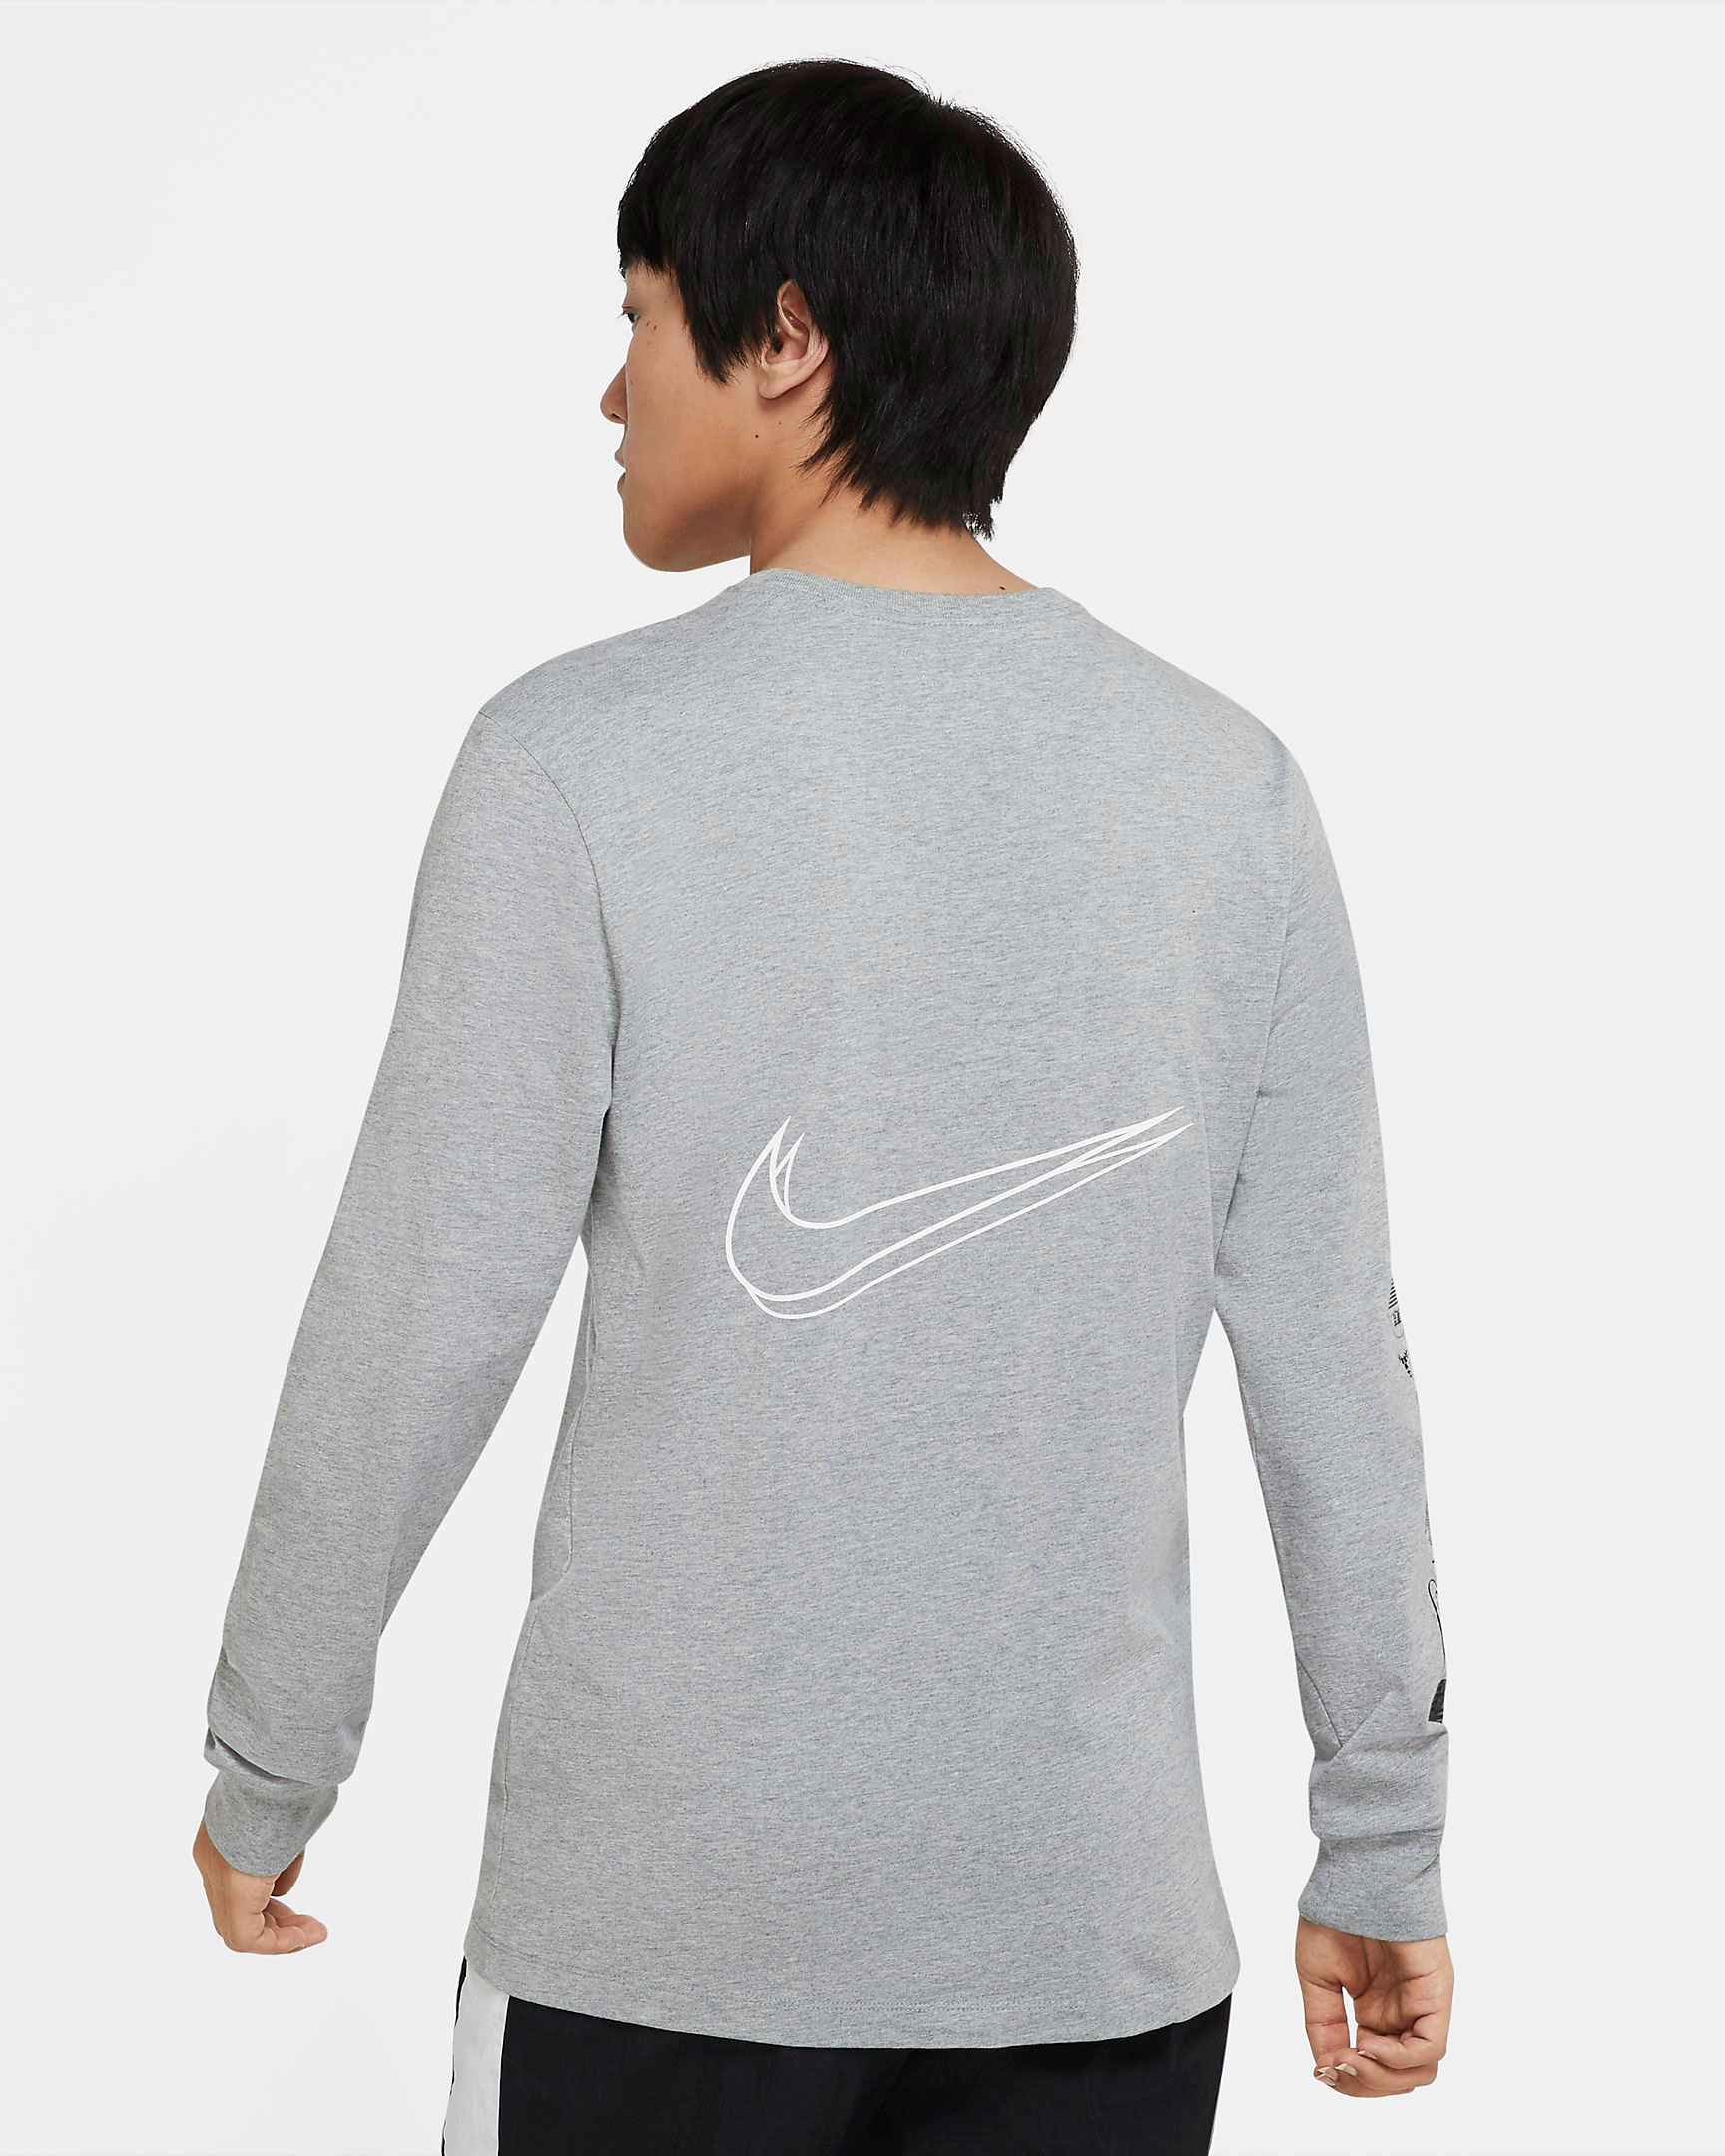 nike-worldwide-long-sleeve-shirt-grey-2